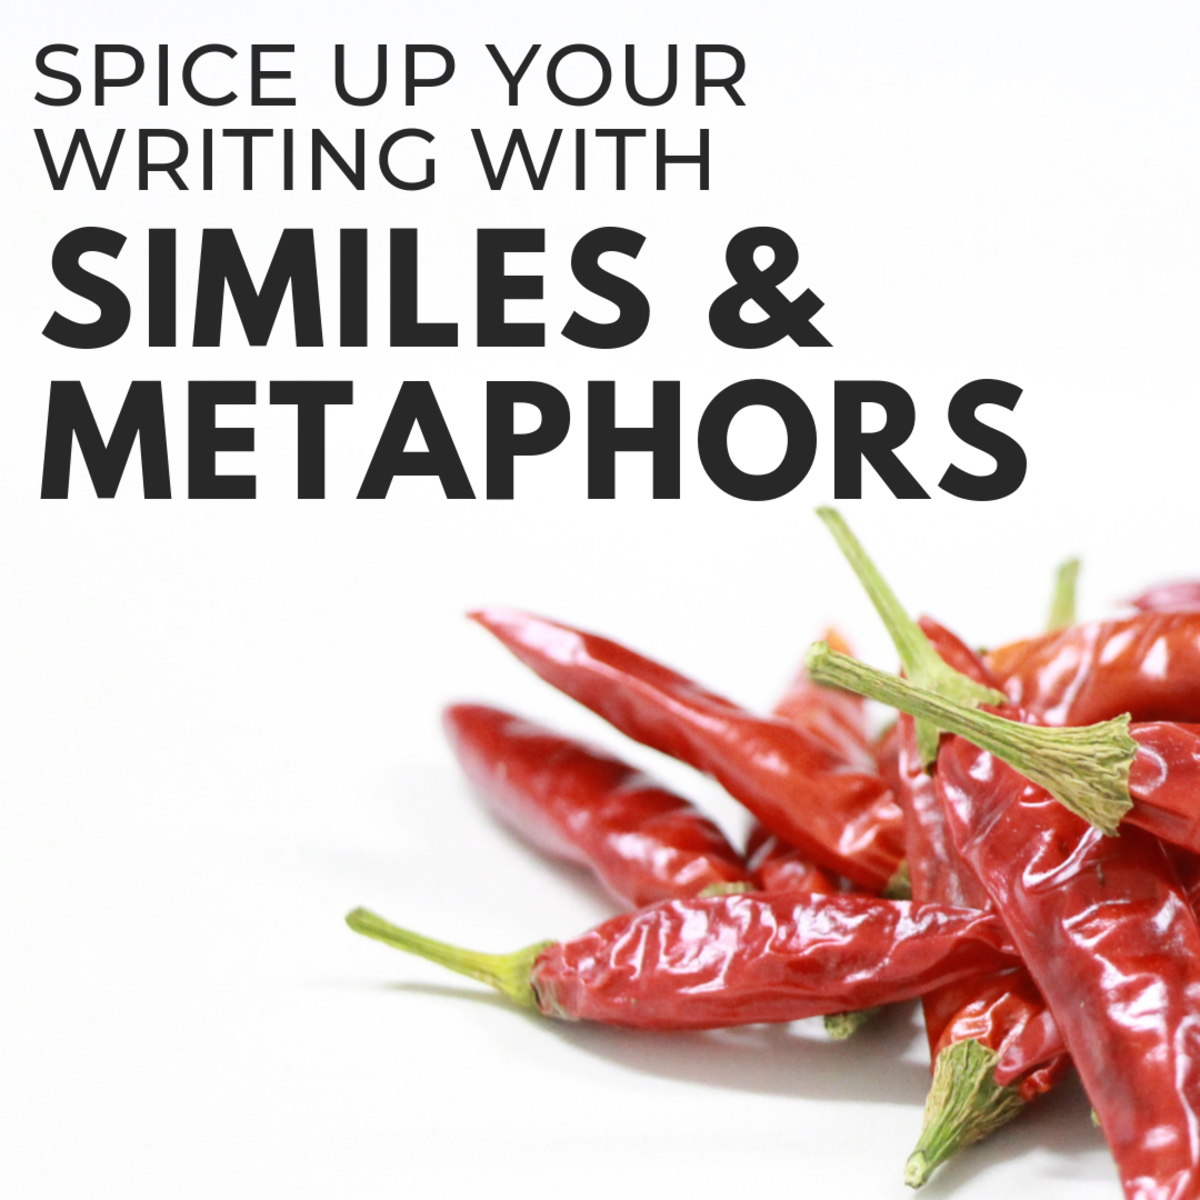 Spice Up Your Writing With Similes and Metaphors